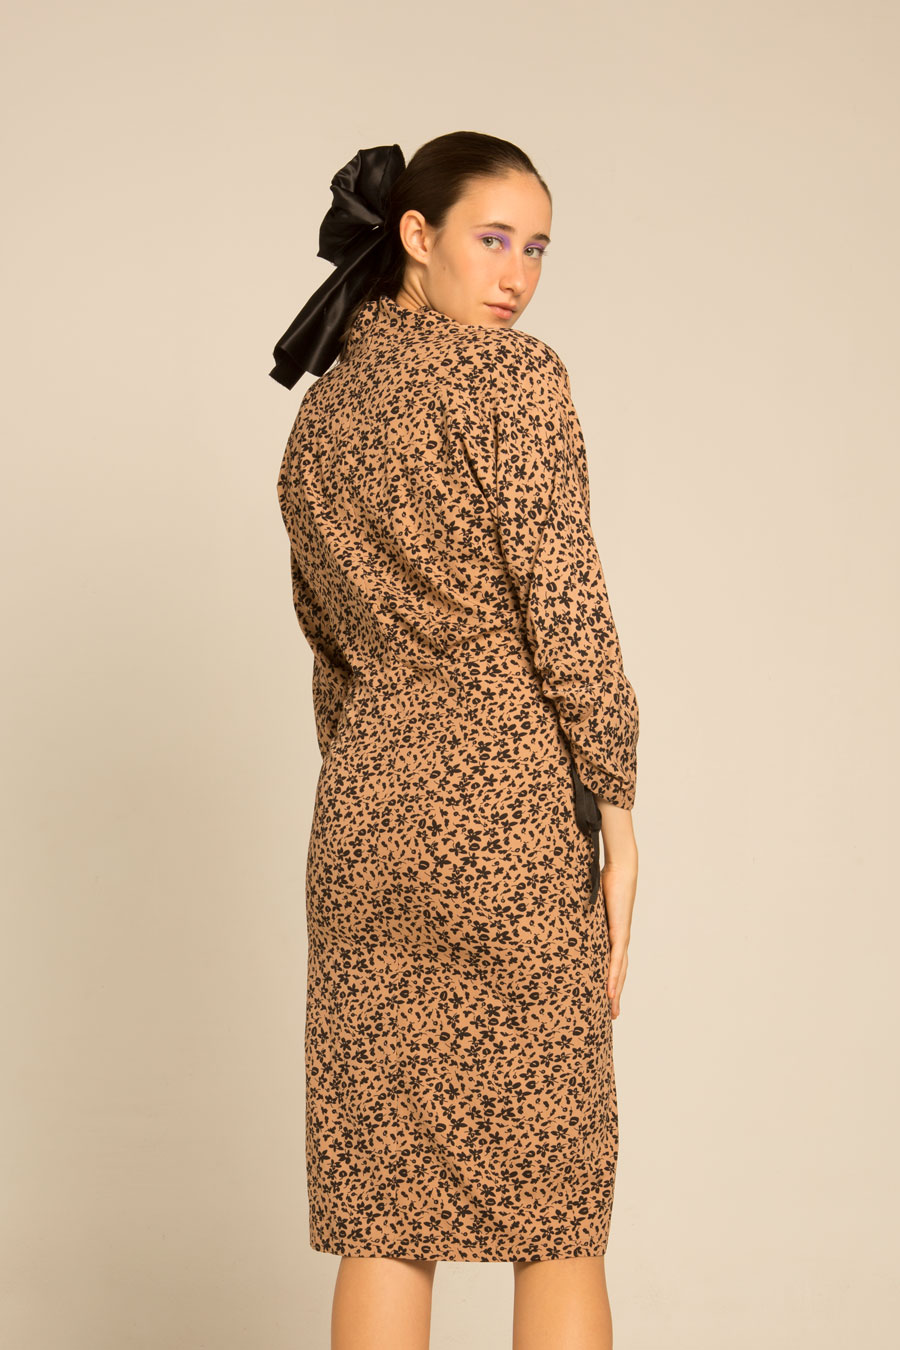 Gatheredllong Sleeve Midi Dress With High Collar And Back Zip Fasyening. Featuring Floral Print